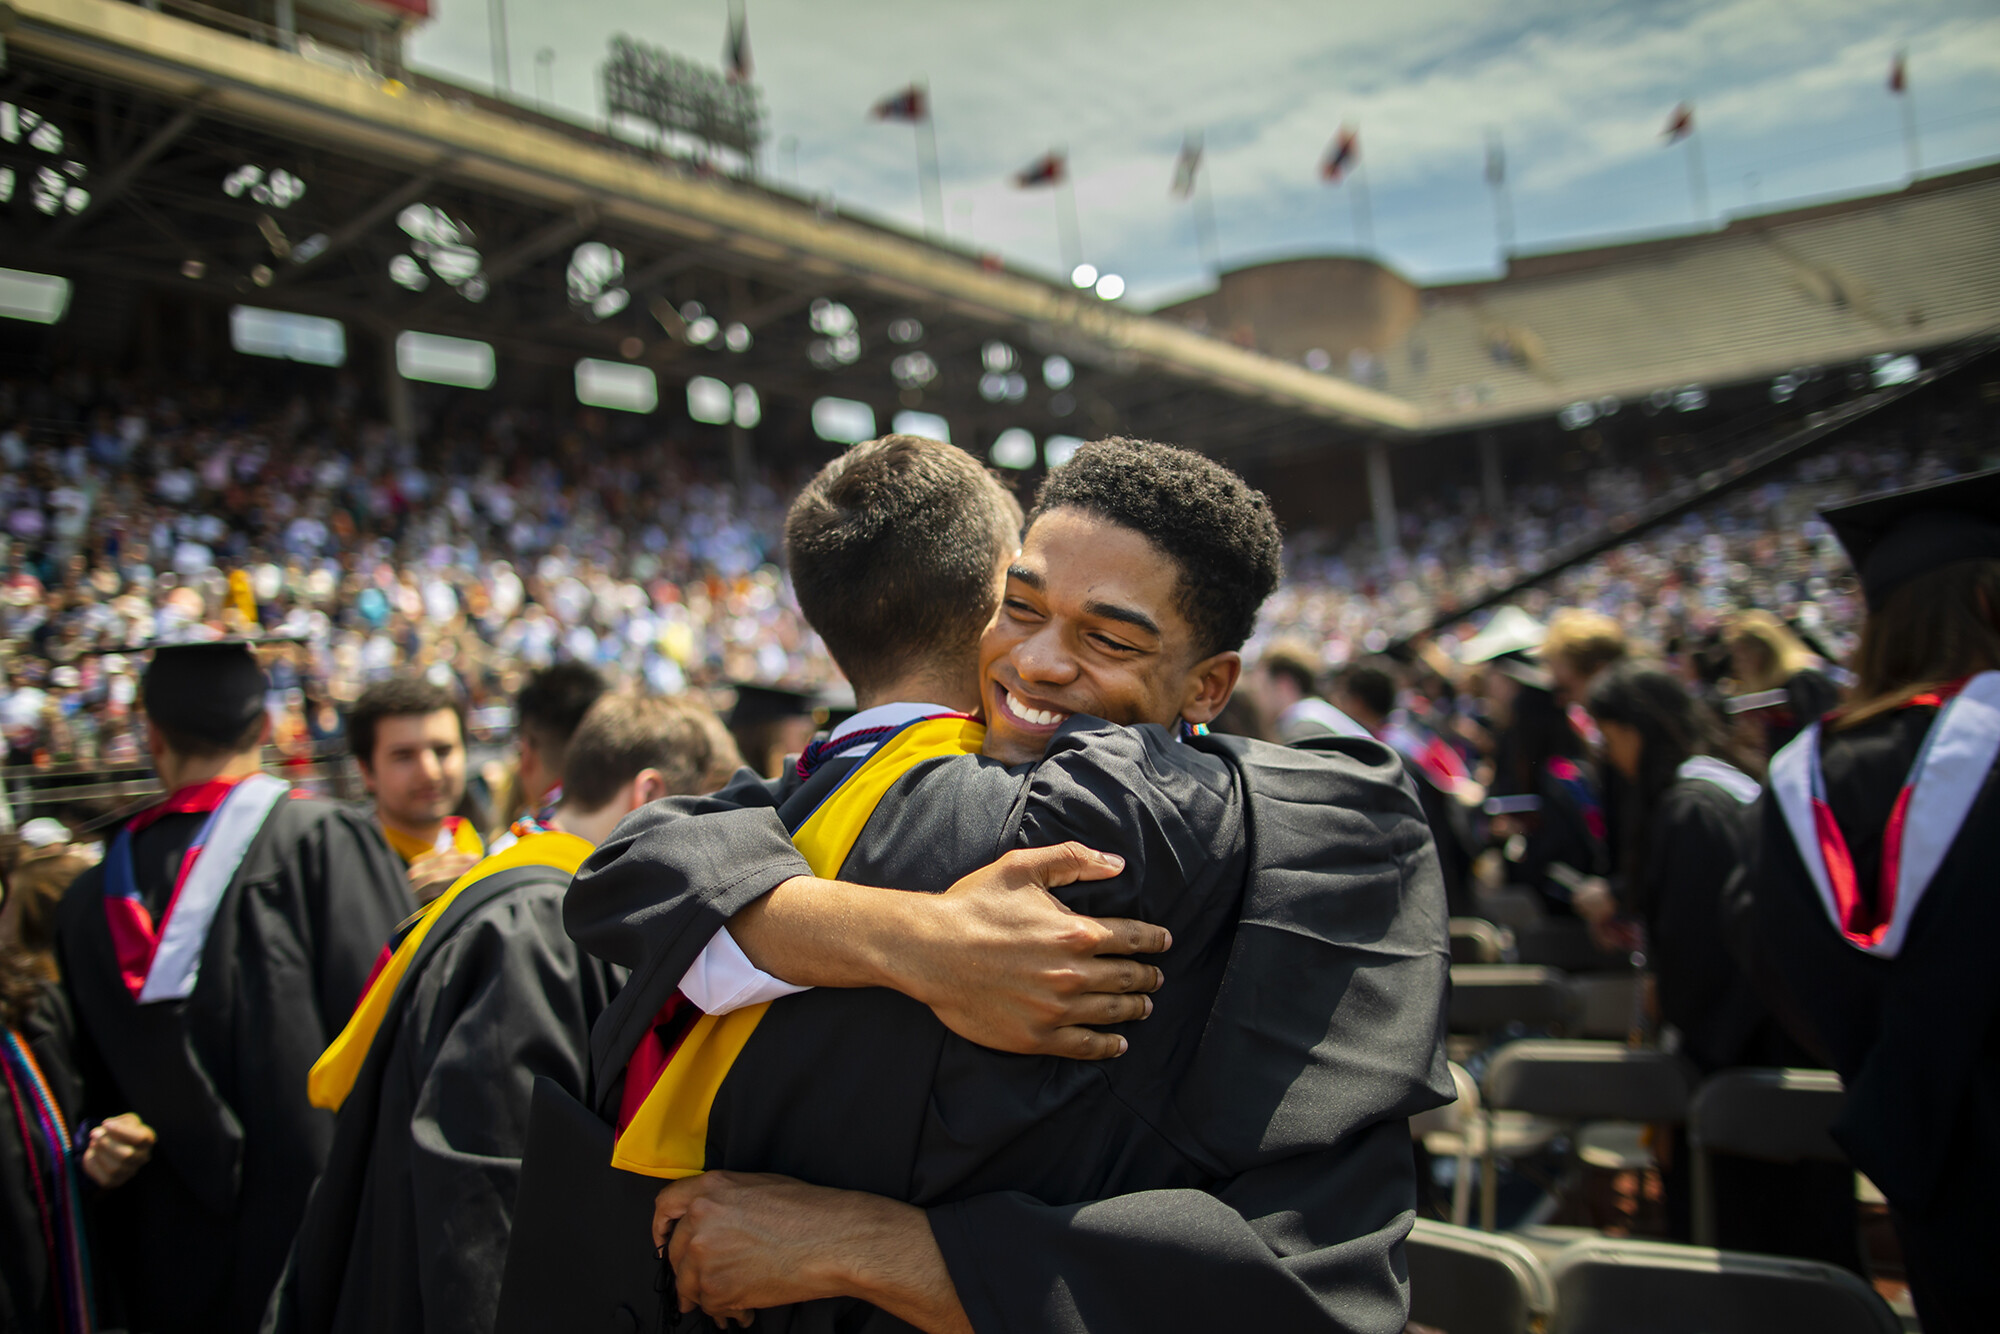 Two graduates embrace on the field at commencement.